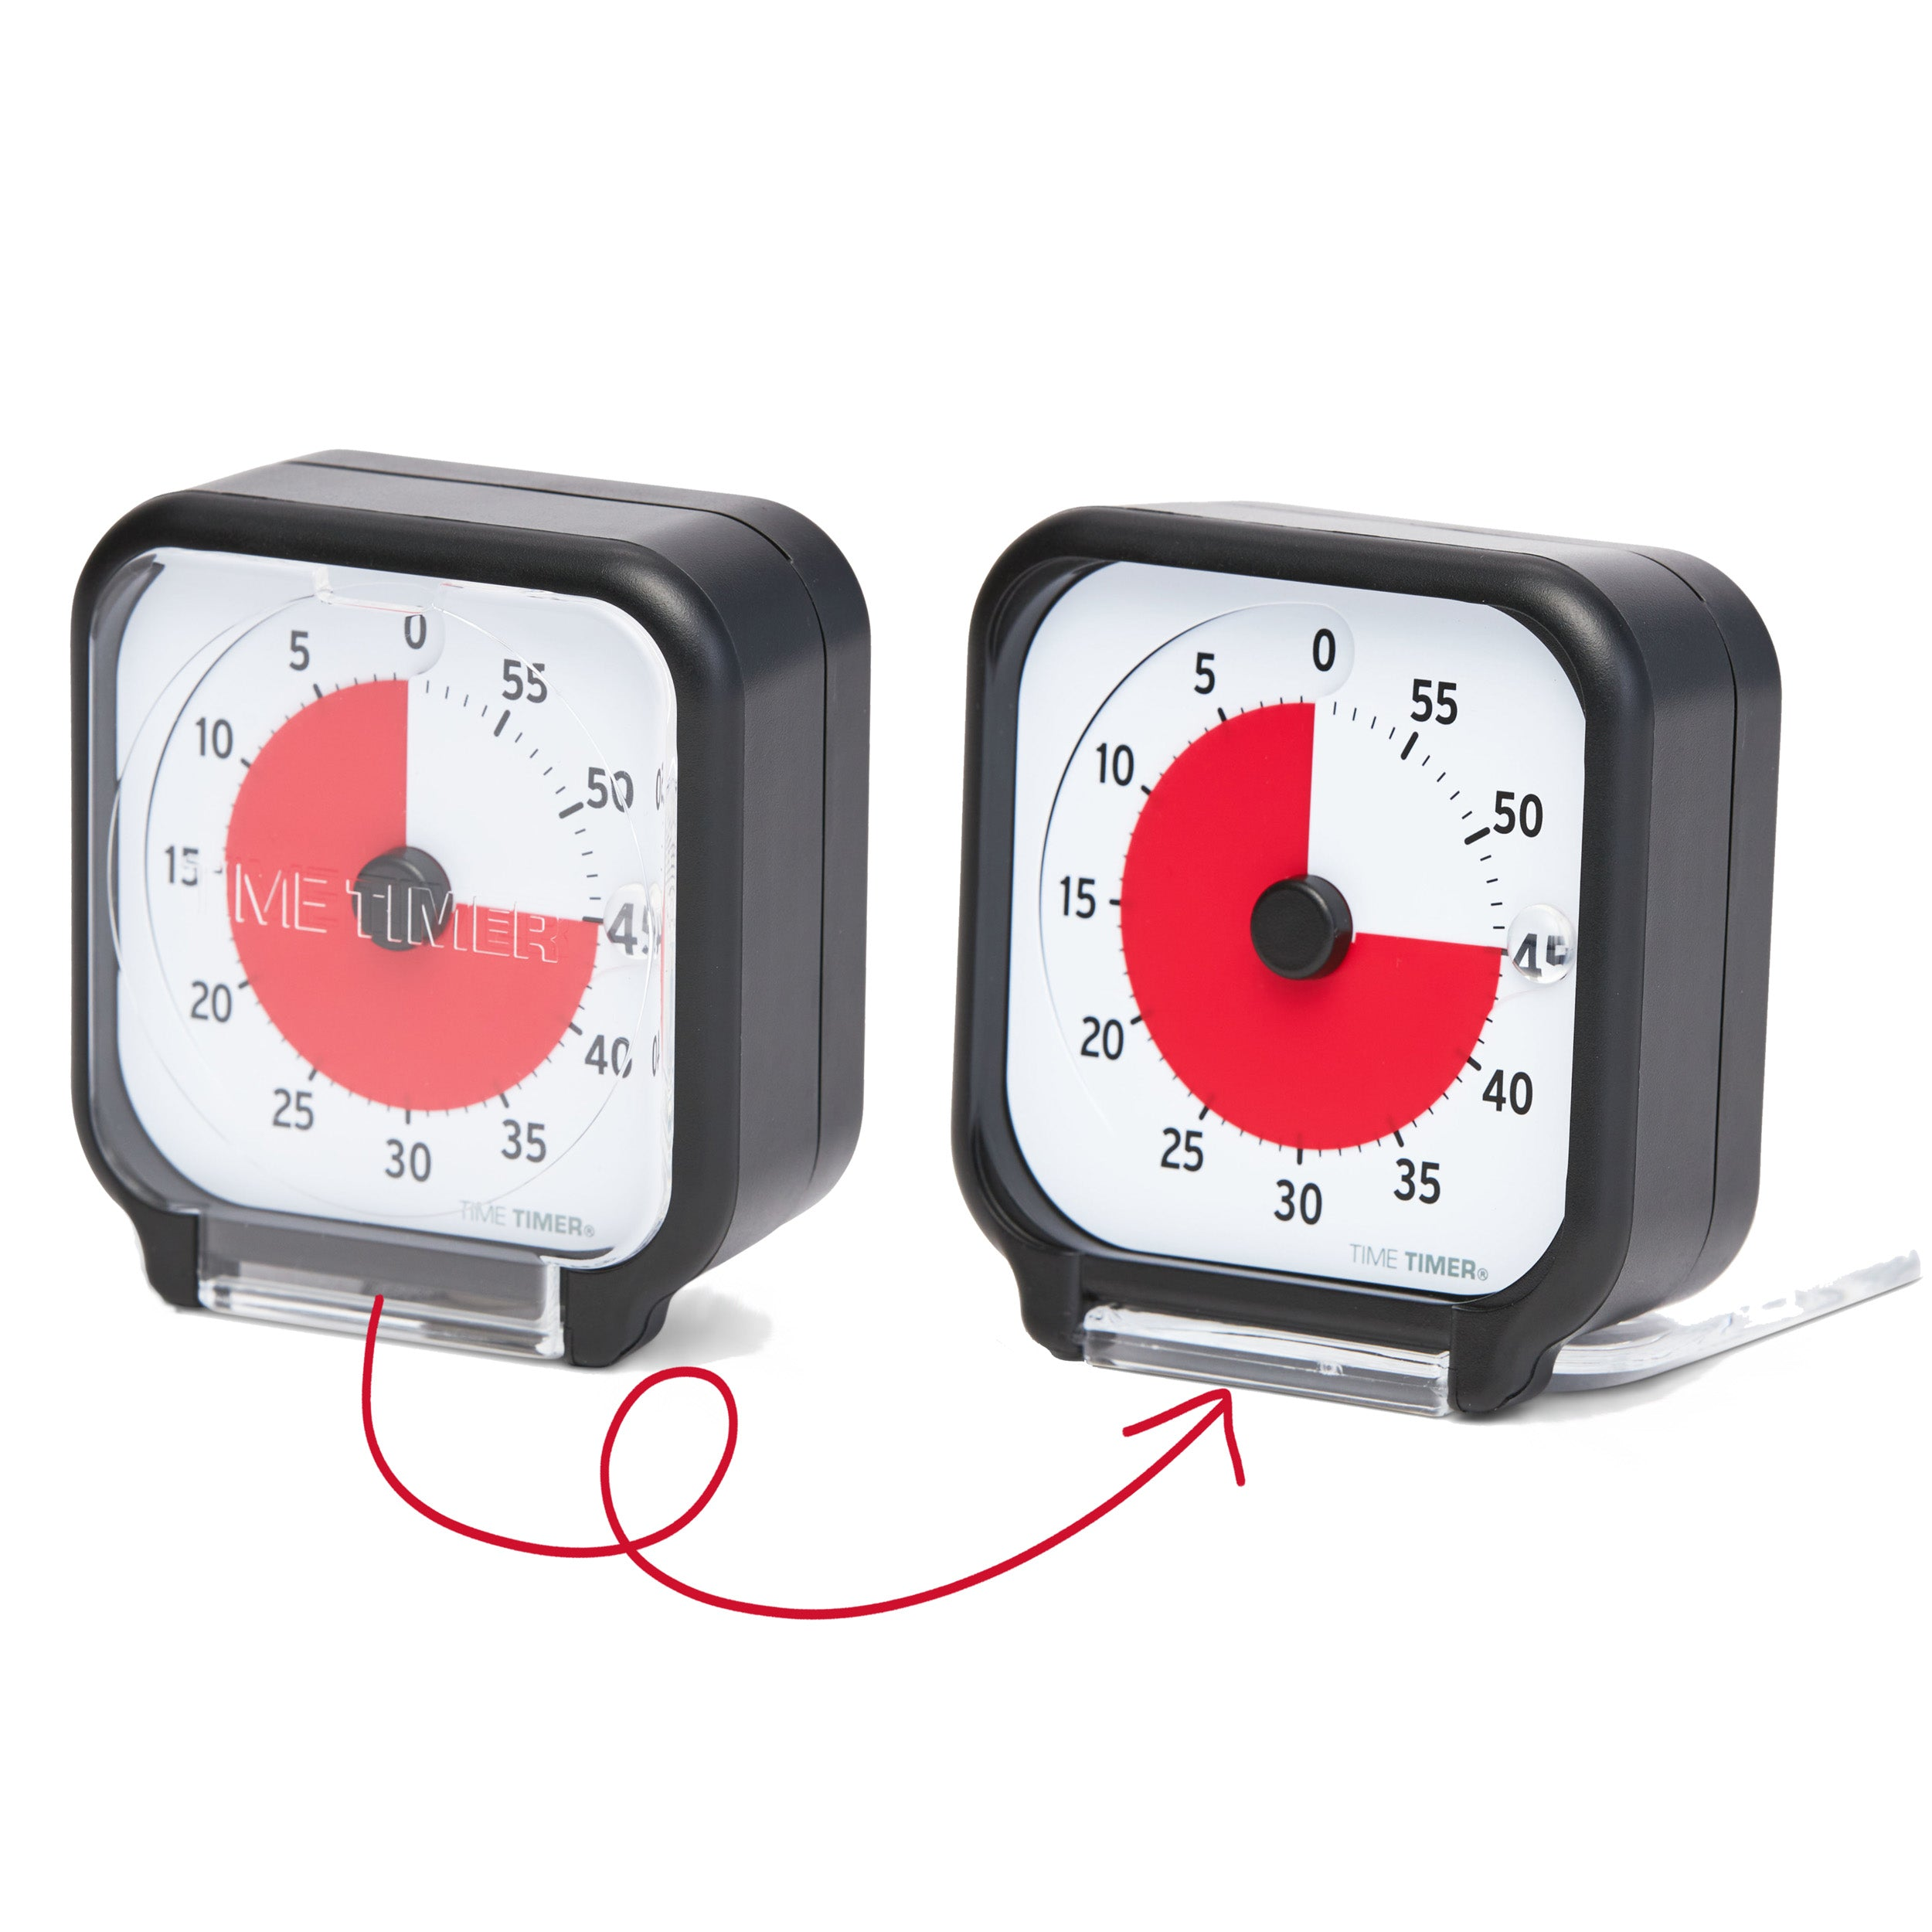 Time Timer Original 3 inch Visual Timer - Pocket. The Time Timer 3-inch has a clear lid. When closed, it protects the timer, and the red disk can be seen through it. When it is open, it folds under the timer, and acts as a stand for the timer to be placed on any flat surface.